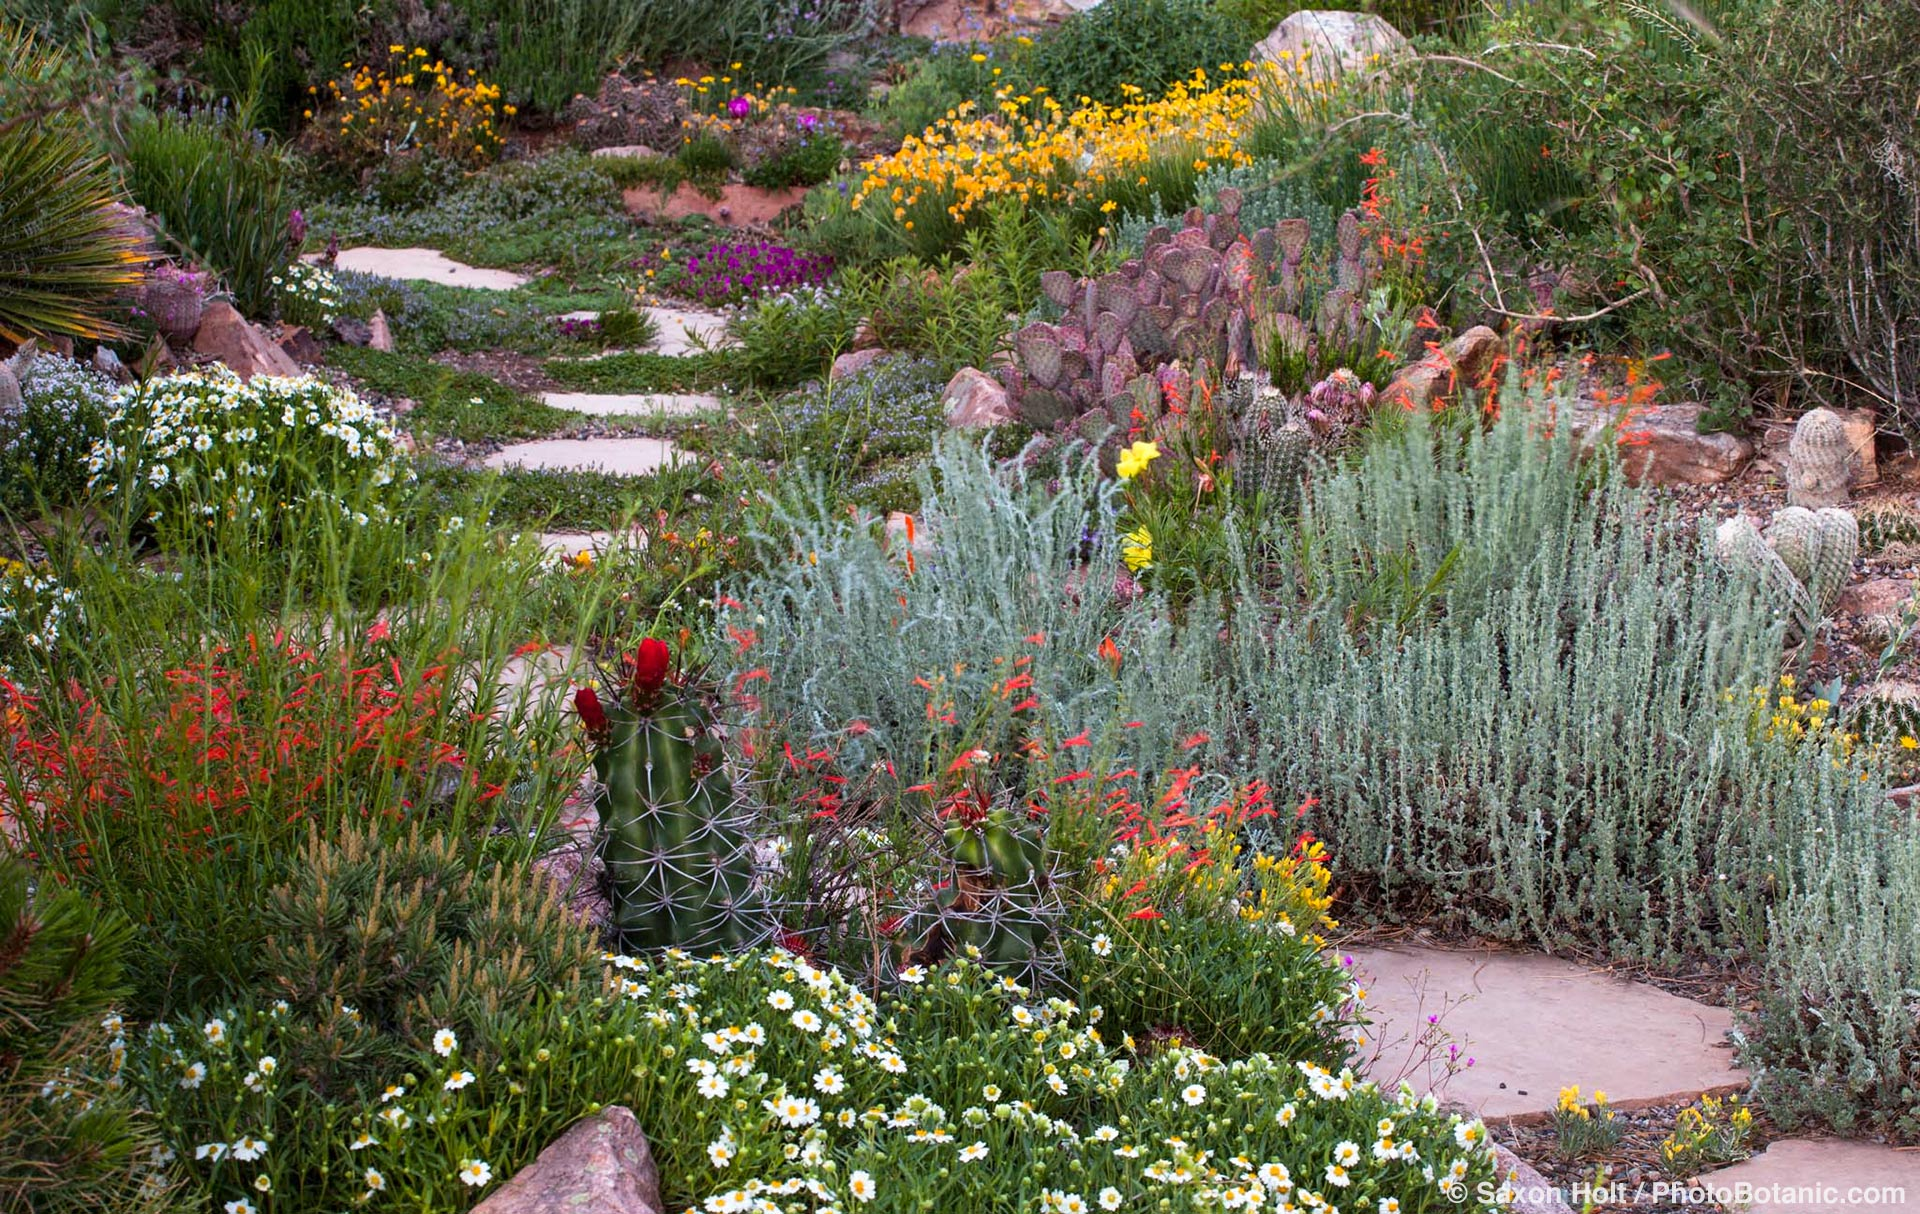 David Salman xeric New Mexico rock garden with silver foliage Artemisia frigida, Penstemon pinnifolius, Melampodium (Blackfoot Daisy) and Claret-cup cactus, Echinocereus triglochidiatus